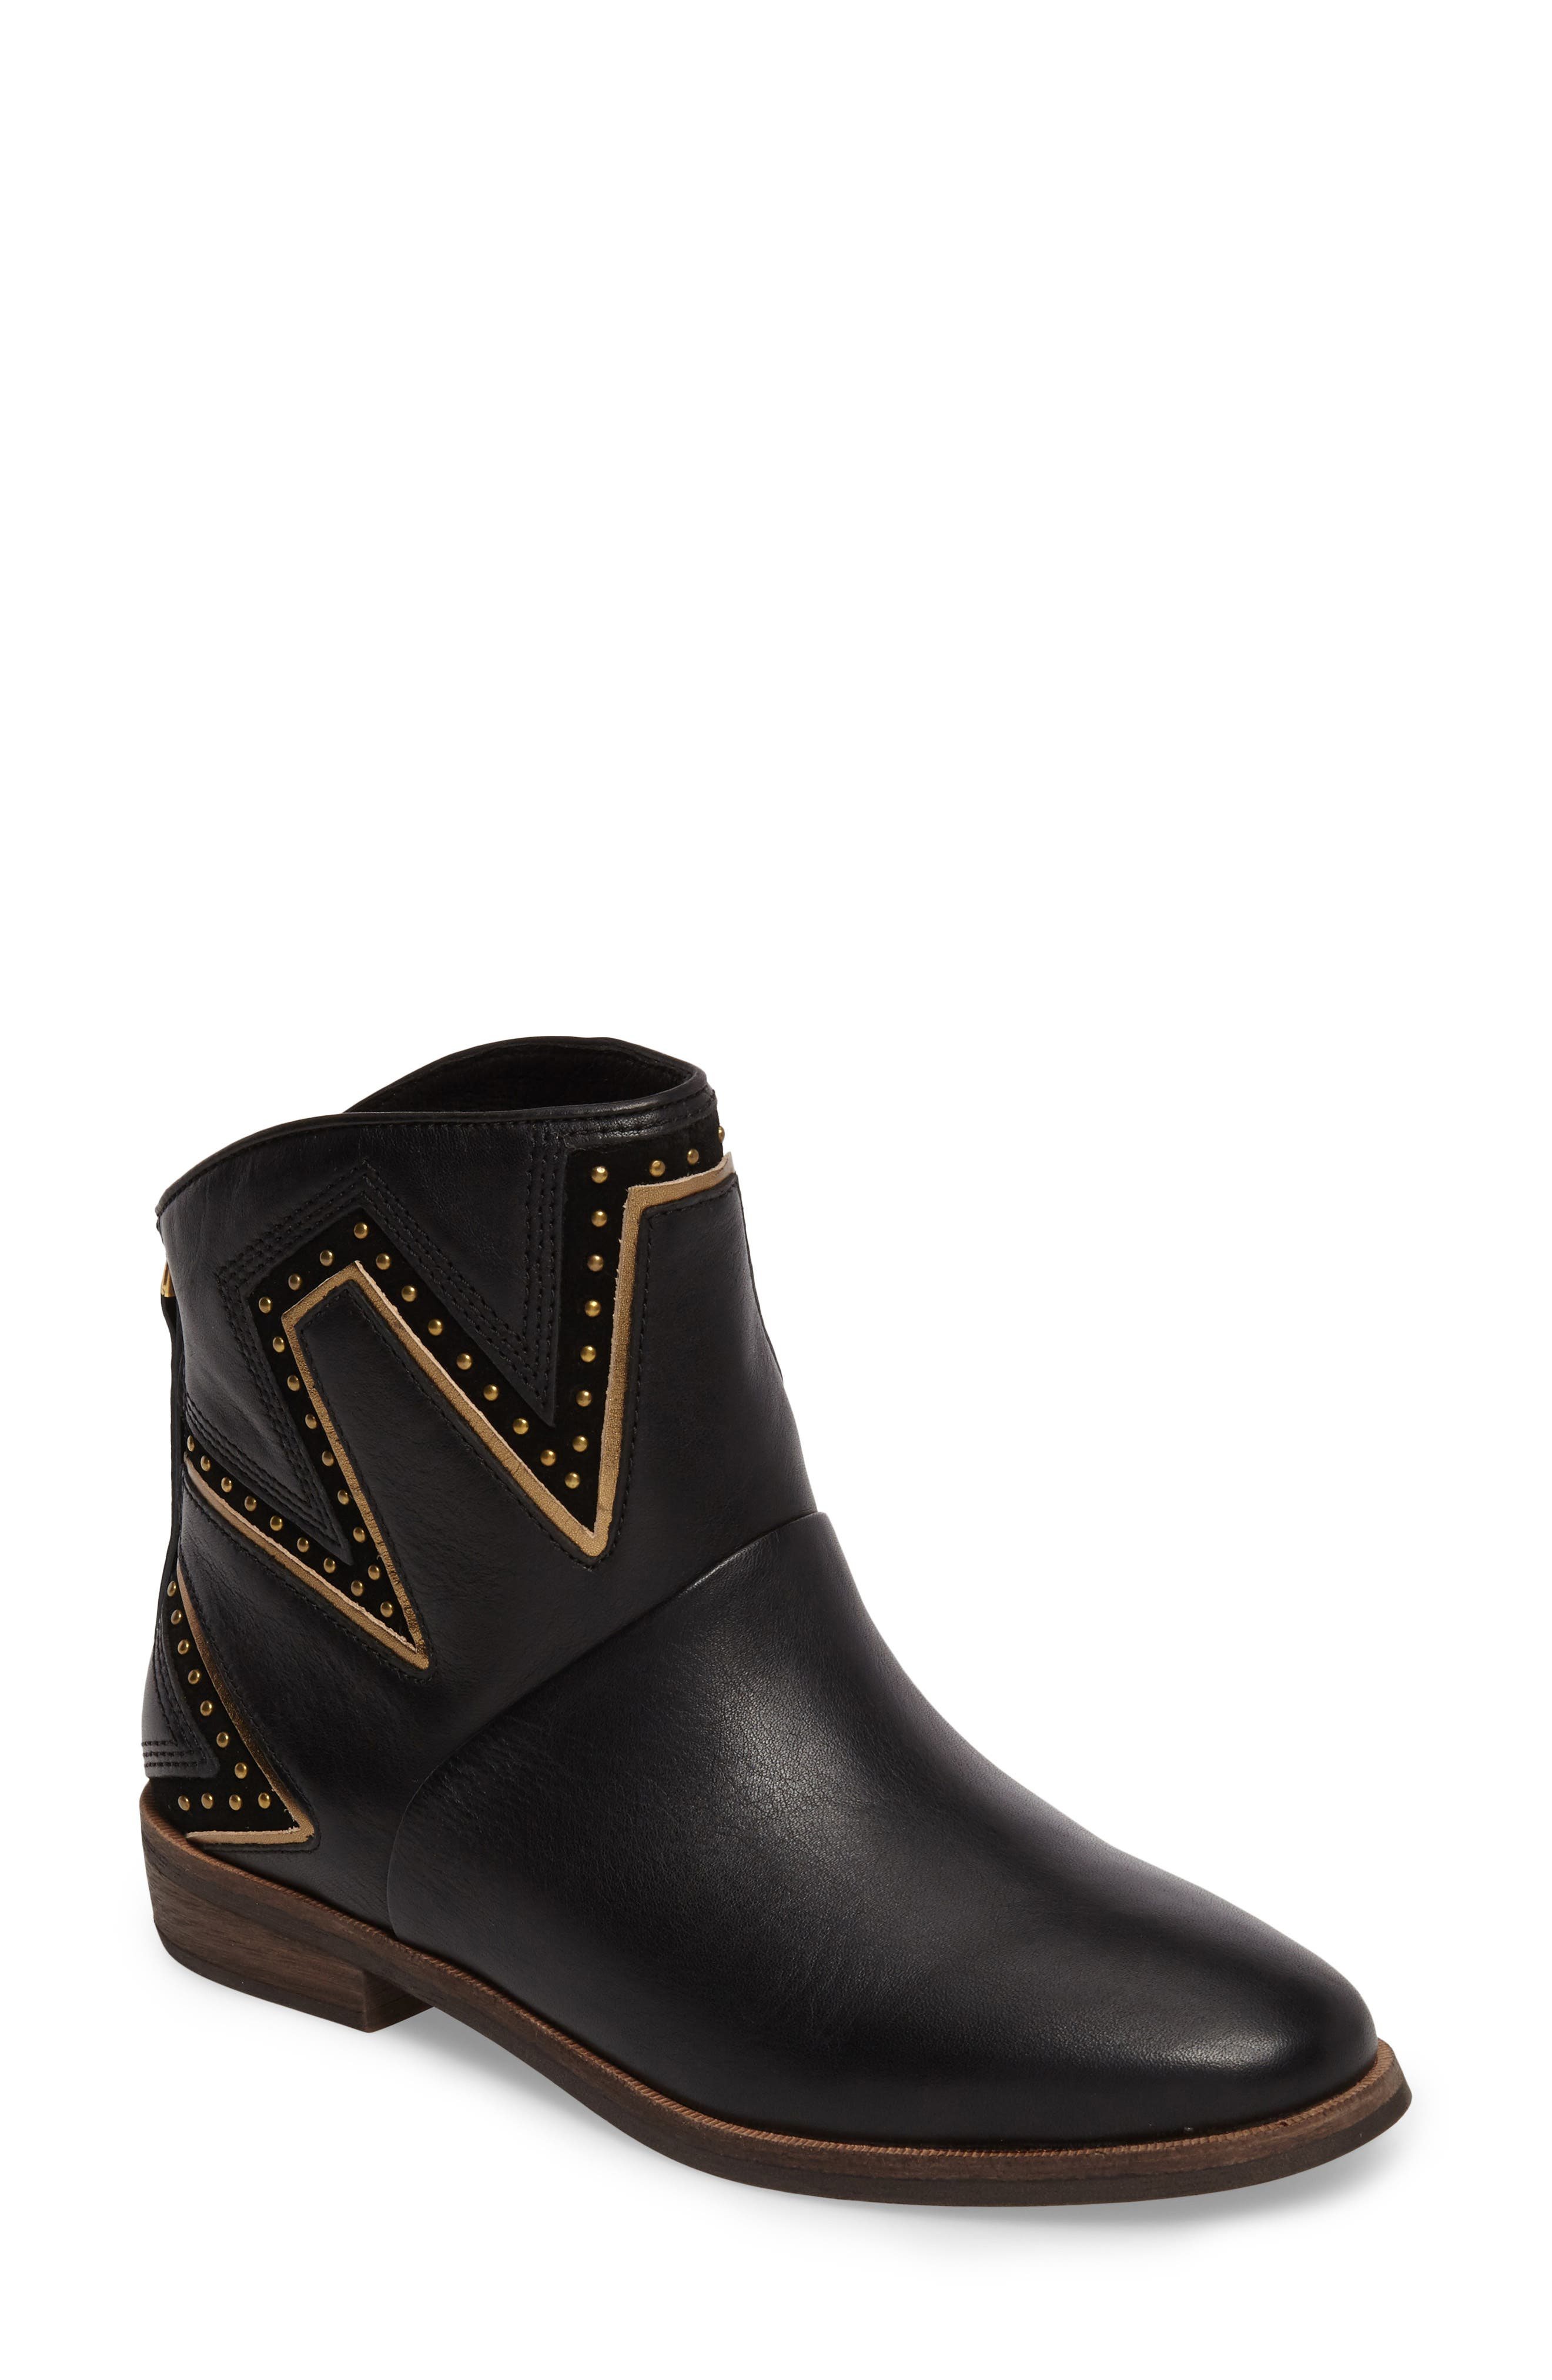 Alternate Image 1 Selected - UGG® Lars Studded Bootie (Women)